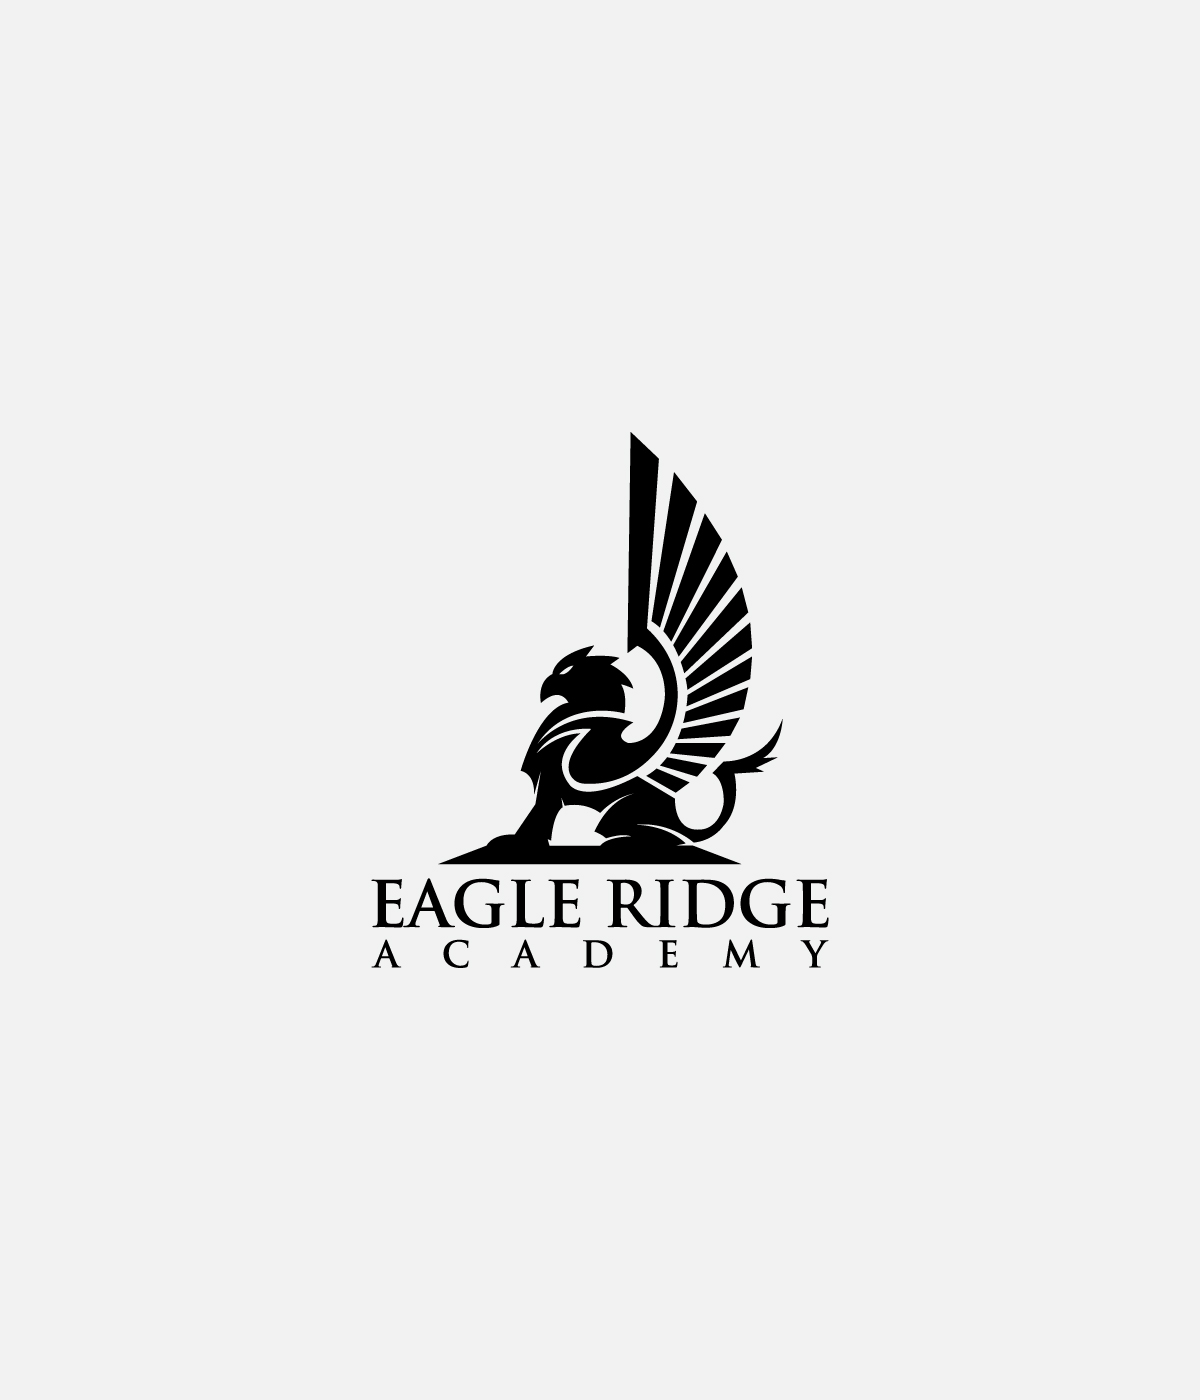 Serious traditional logo design for eagle ridge academy by logo design by kaijuthemes for gryphon for eagle ridge academy design 9607210 biocorpaavc Images